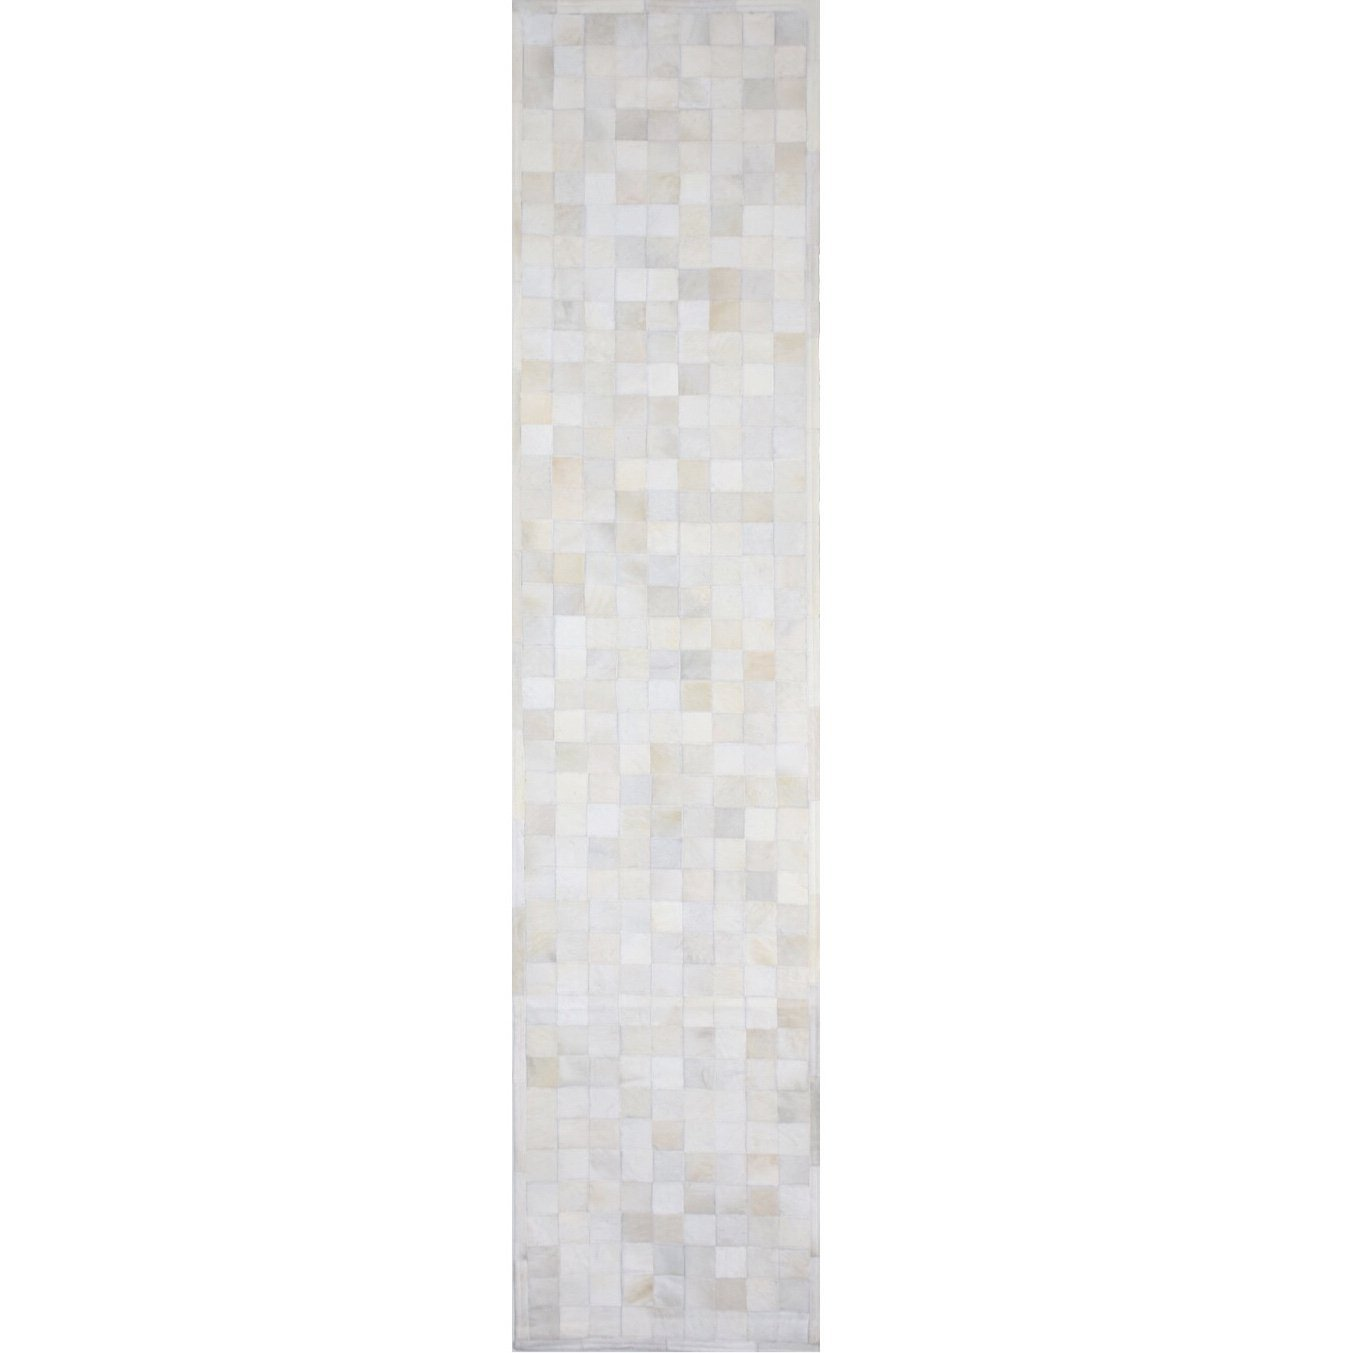 natural rugs, patchwork hair on hide rug, rugs, rugs usa, cowhide area rug,